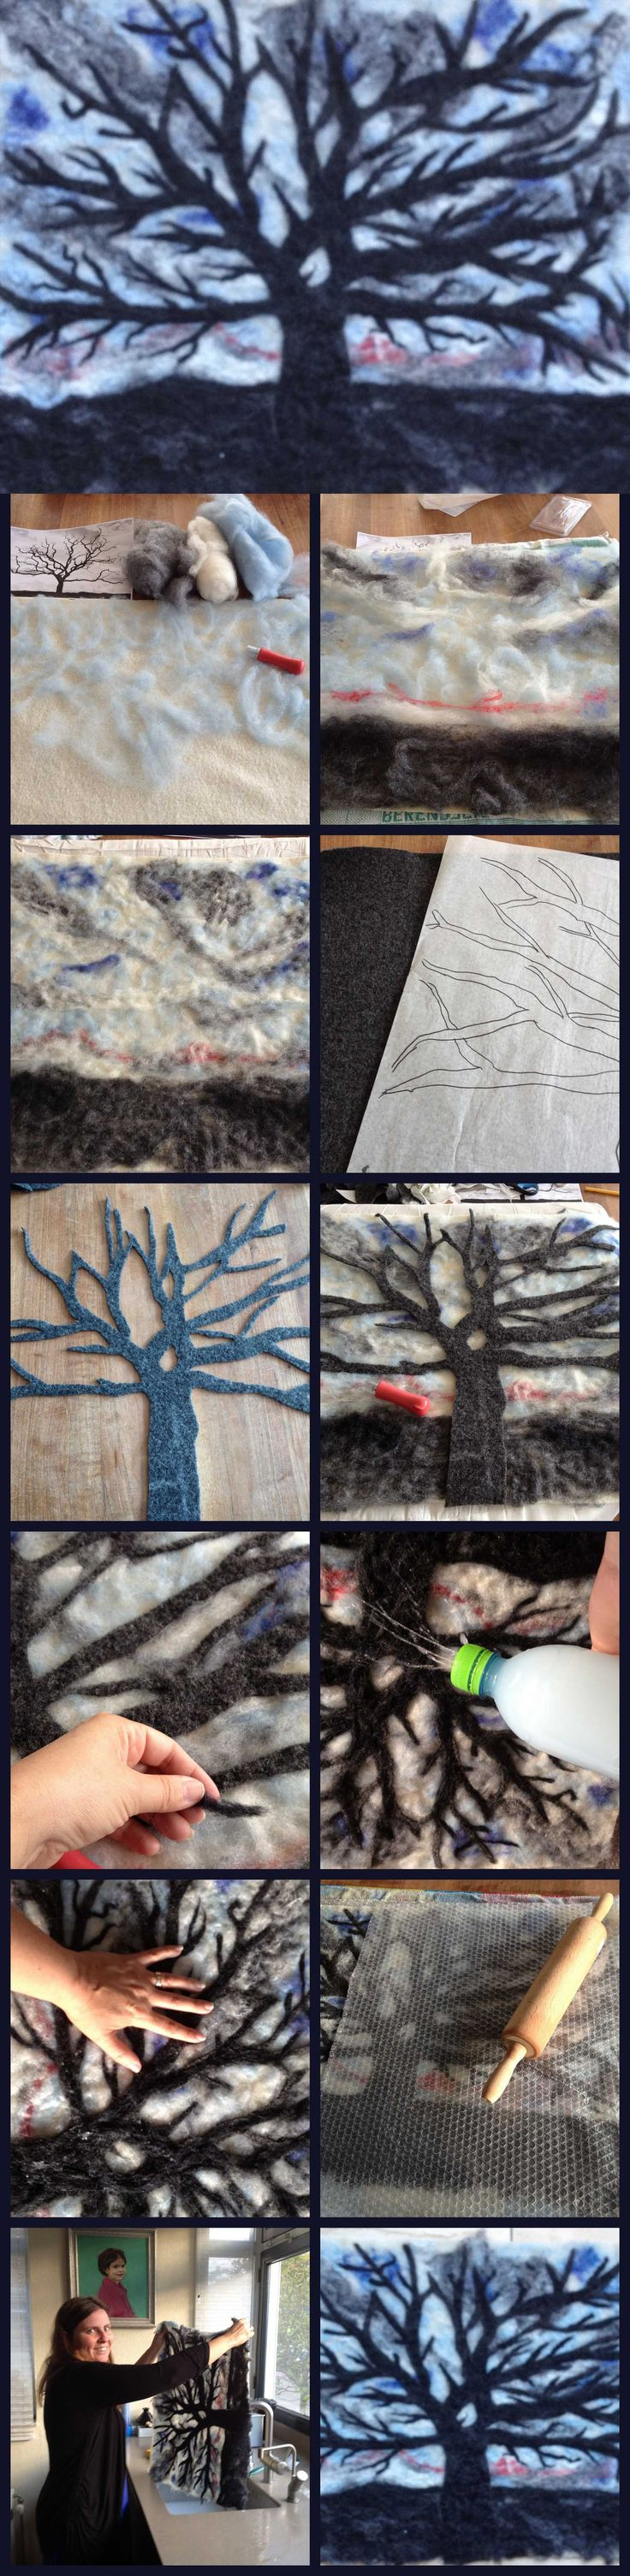 Felt  needle felt  wet felt  with felt wool, arbre tapís